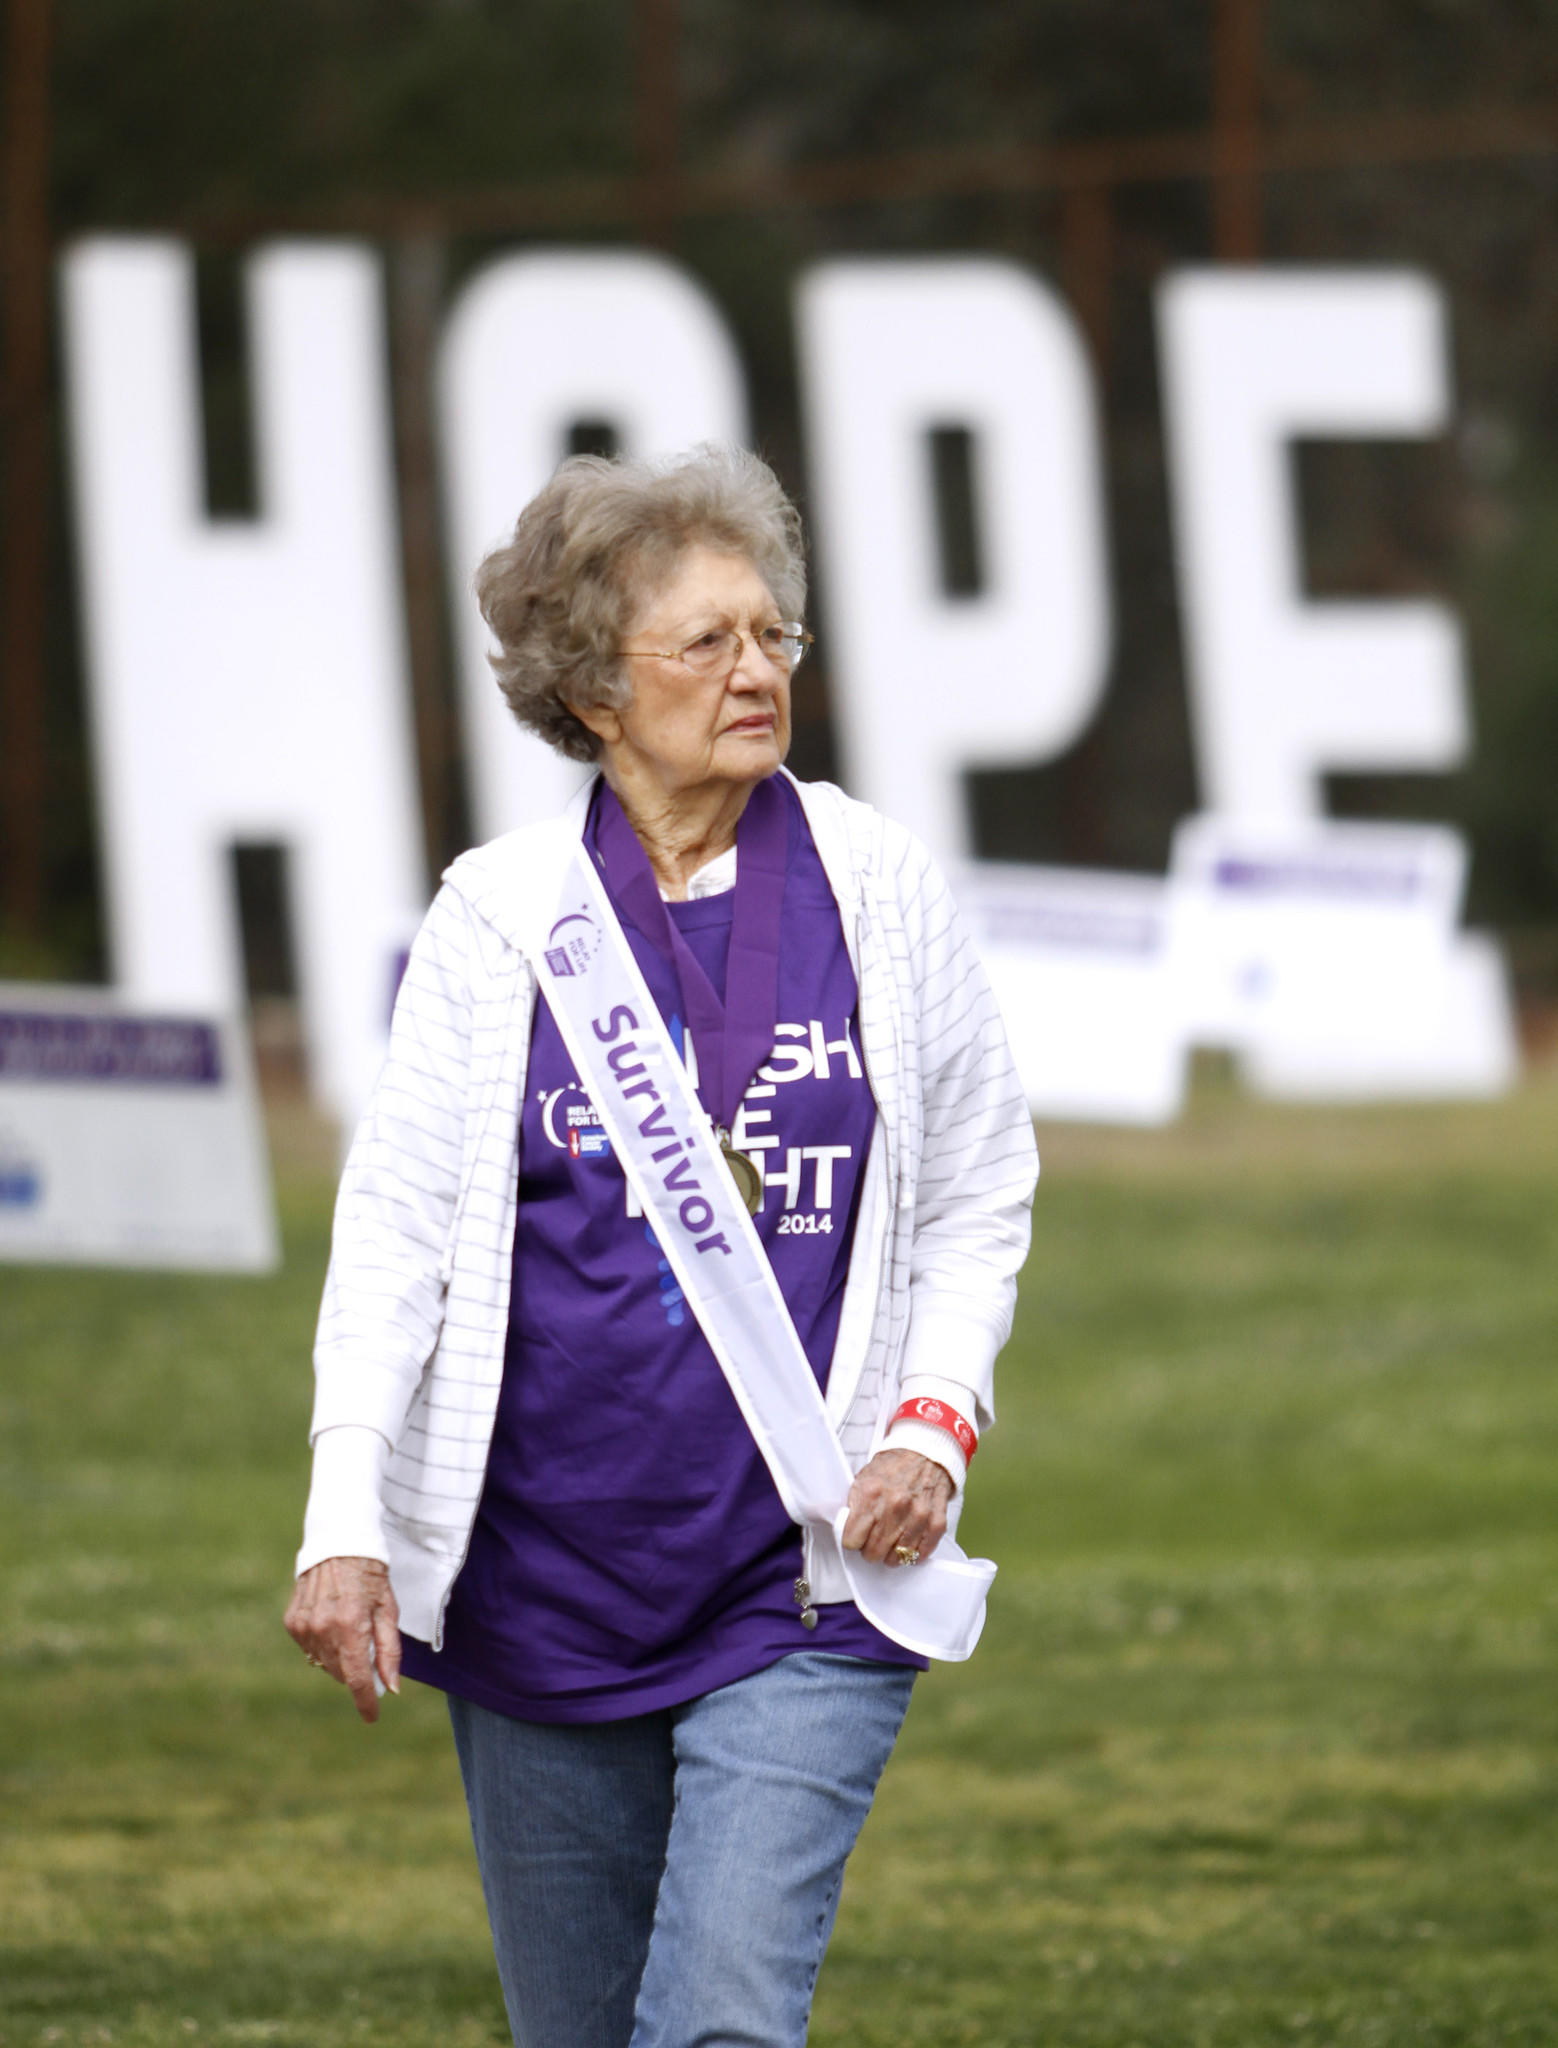 Cancer survivor Jan Stanton, 87 of La Cañada Flintridge and a 17-yr. breast cancer survivor, participates in the 14th annual Foothills Relay for Life at Clark Magnet High School in La Crescenta on Saturday, April 12, 2014.